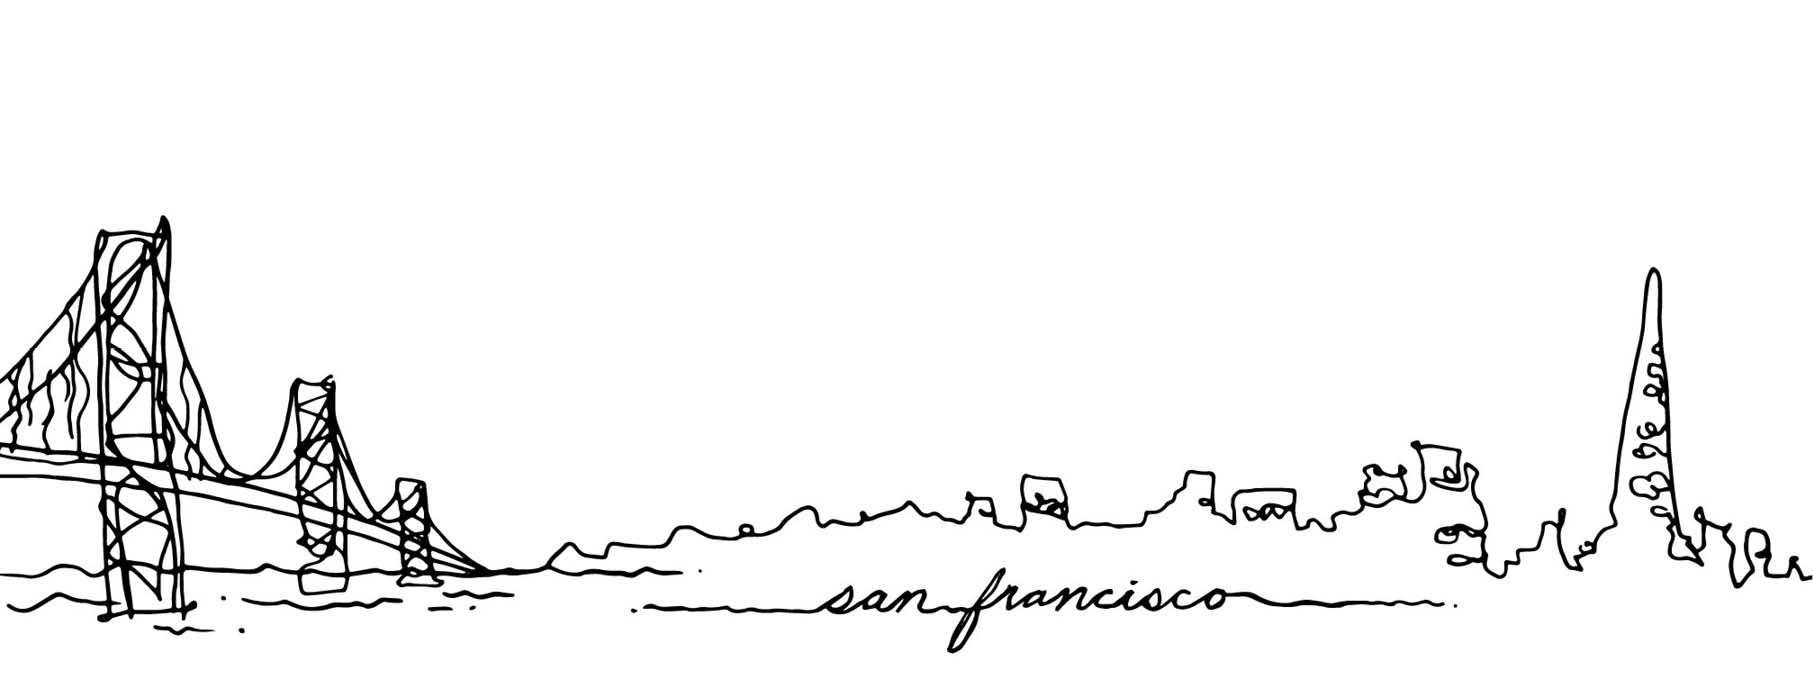 San Francisco Cityscapes Collection